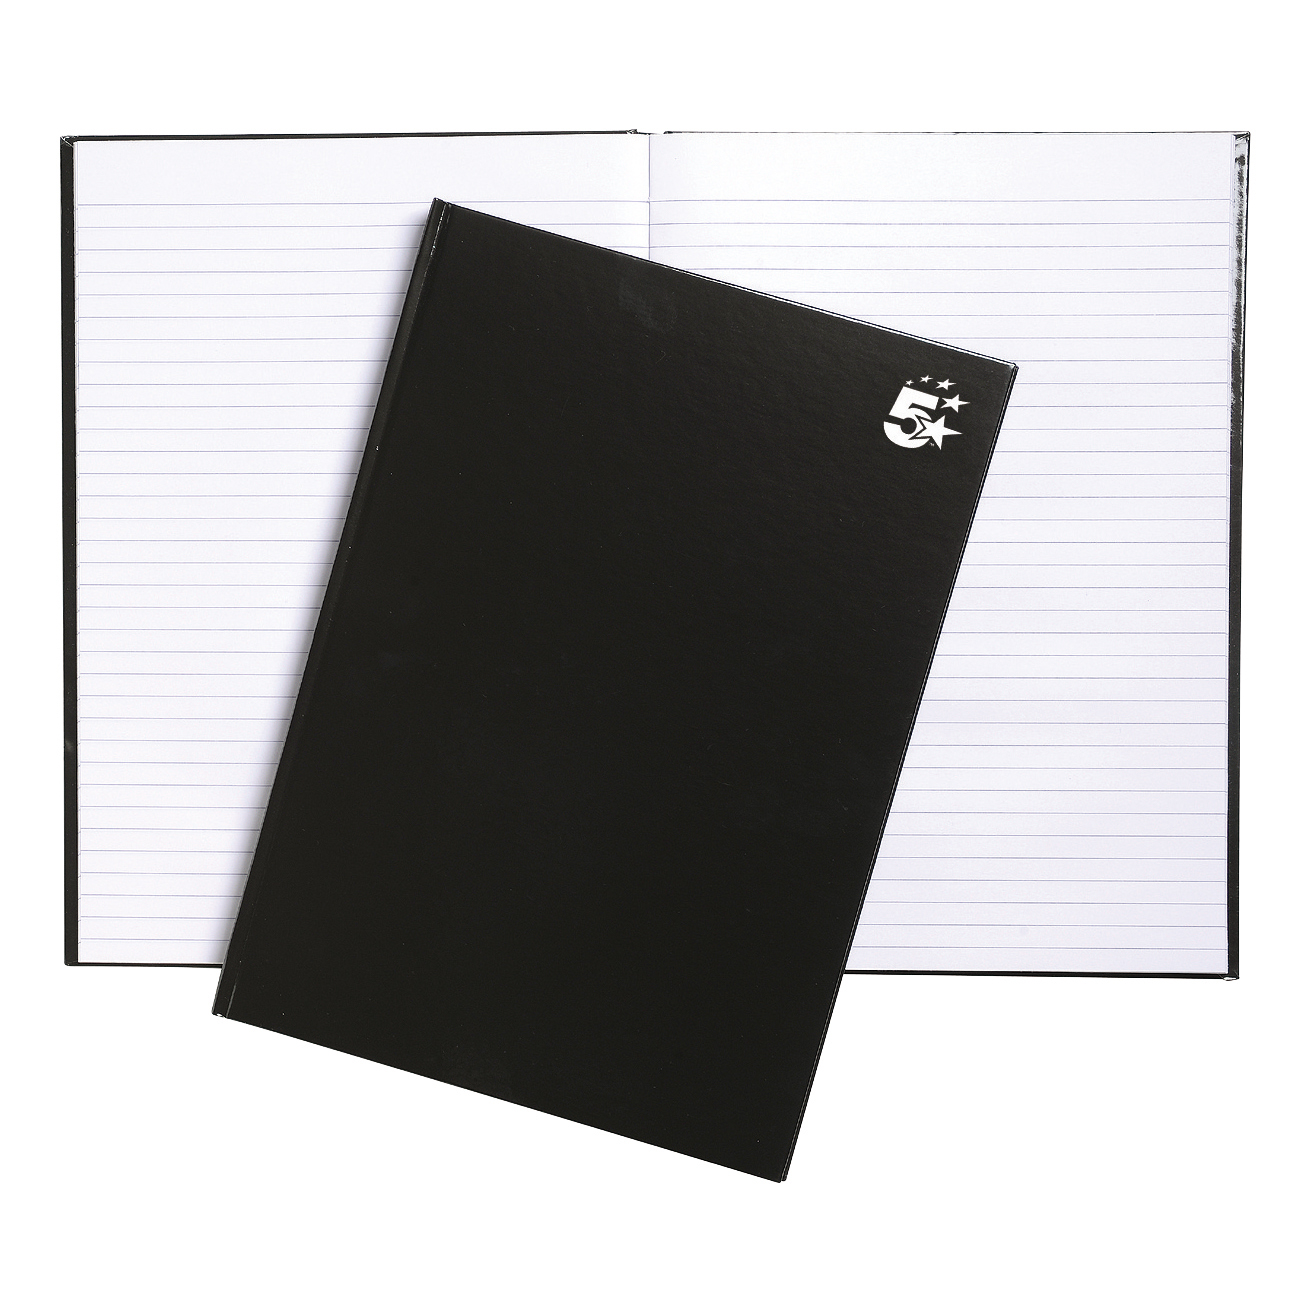 Notebooks 5 Star Office Notebook Casebound 75gsm Ruled 160pp A4 Black Pack 5